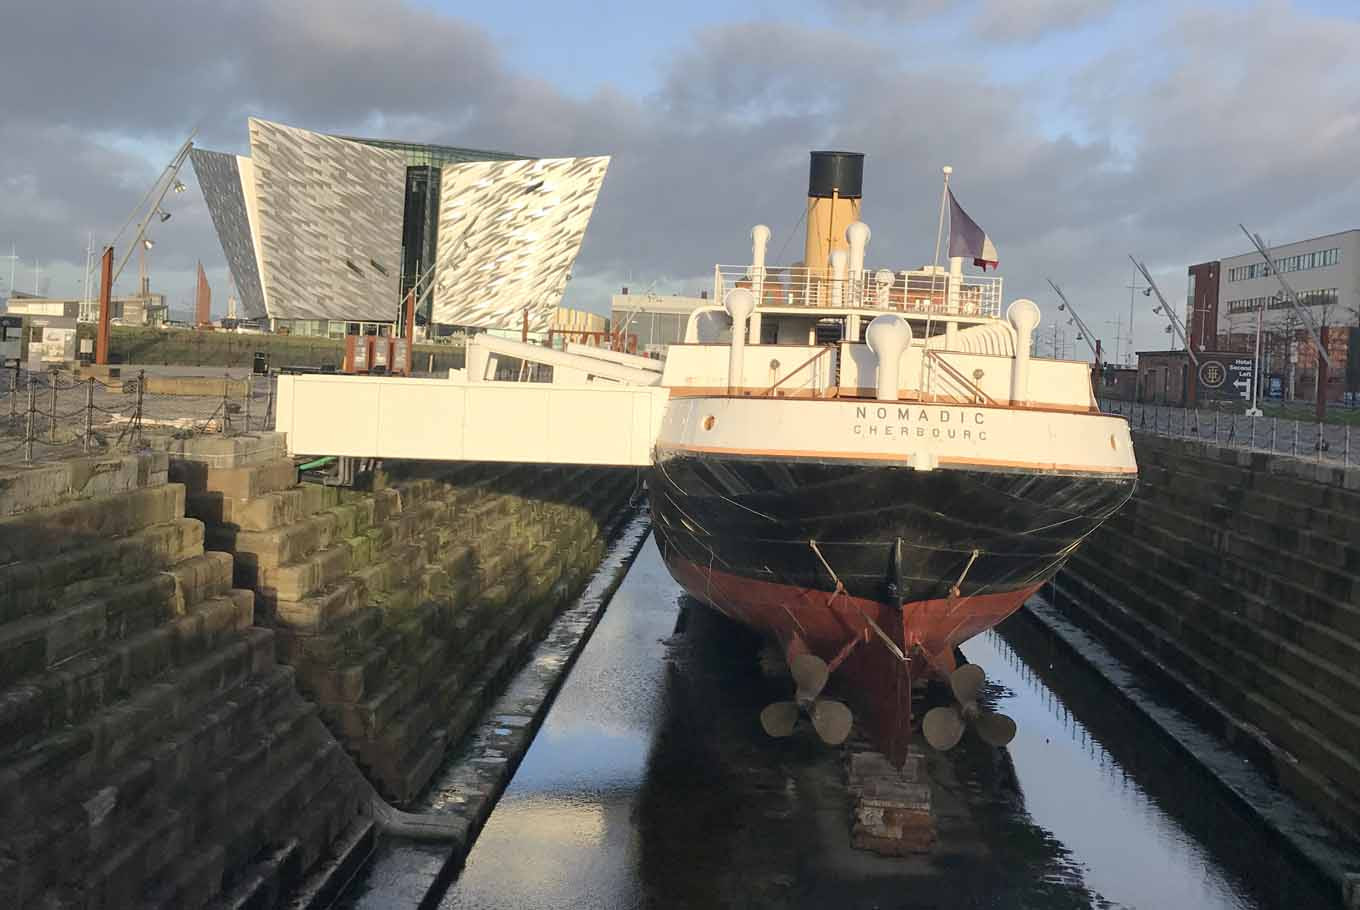 The SS Nomadic, a ship in the Titanic Quarter